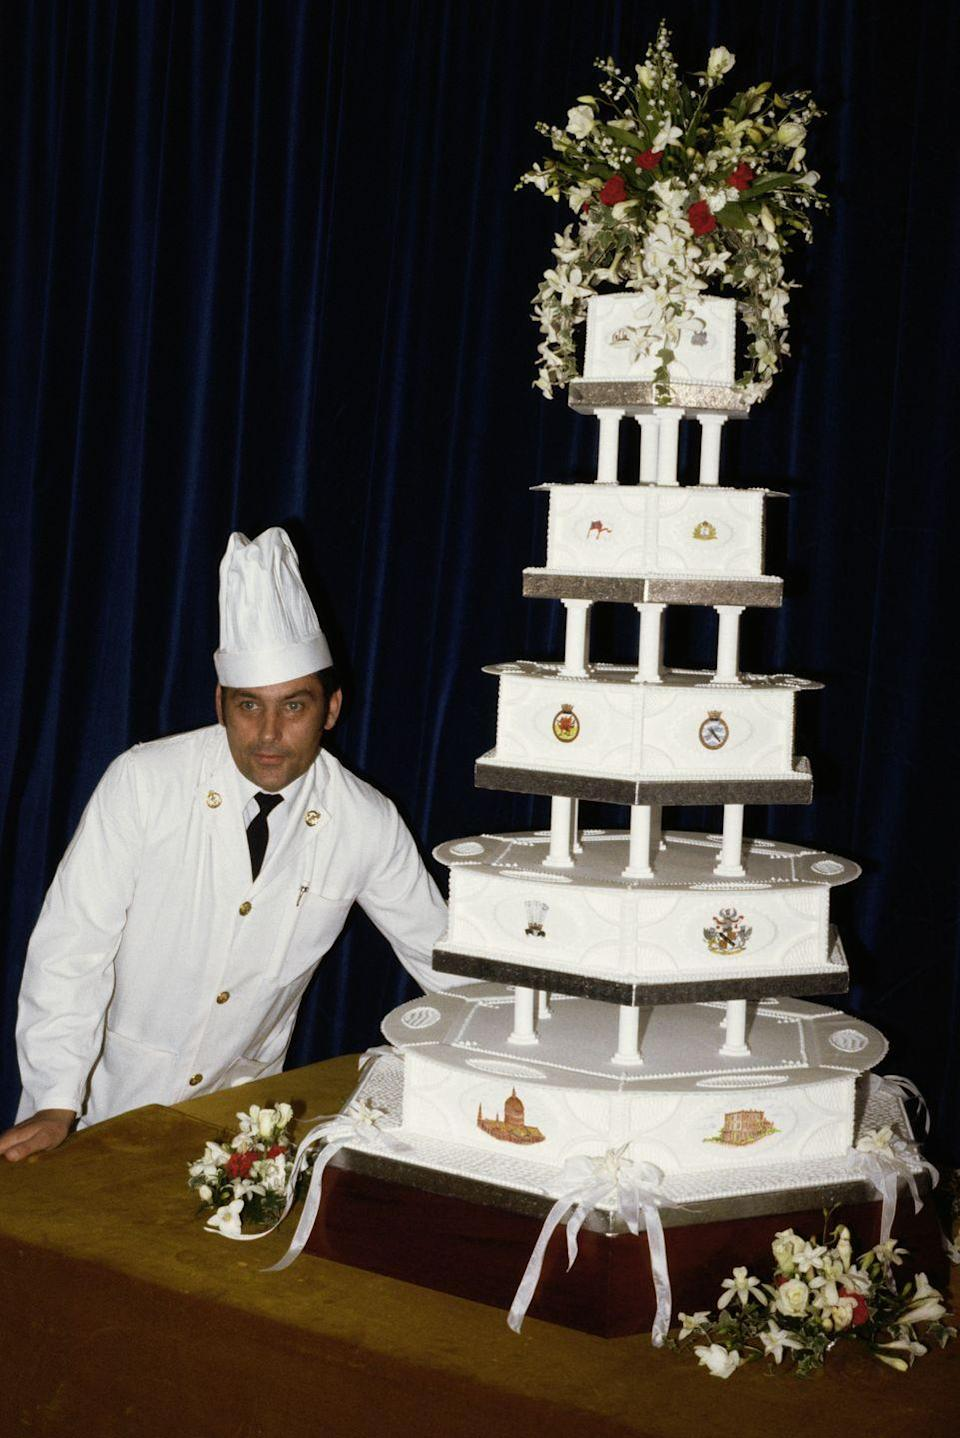 <p>When you have to feed thousands of guests at your reception, one cake will not do—so they had 27. But their official cake was a multi-tiered fruit cake made by the head baker at the Royal Naval Cookery School.</p>